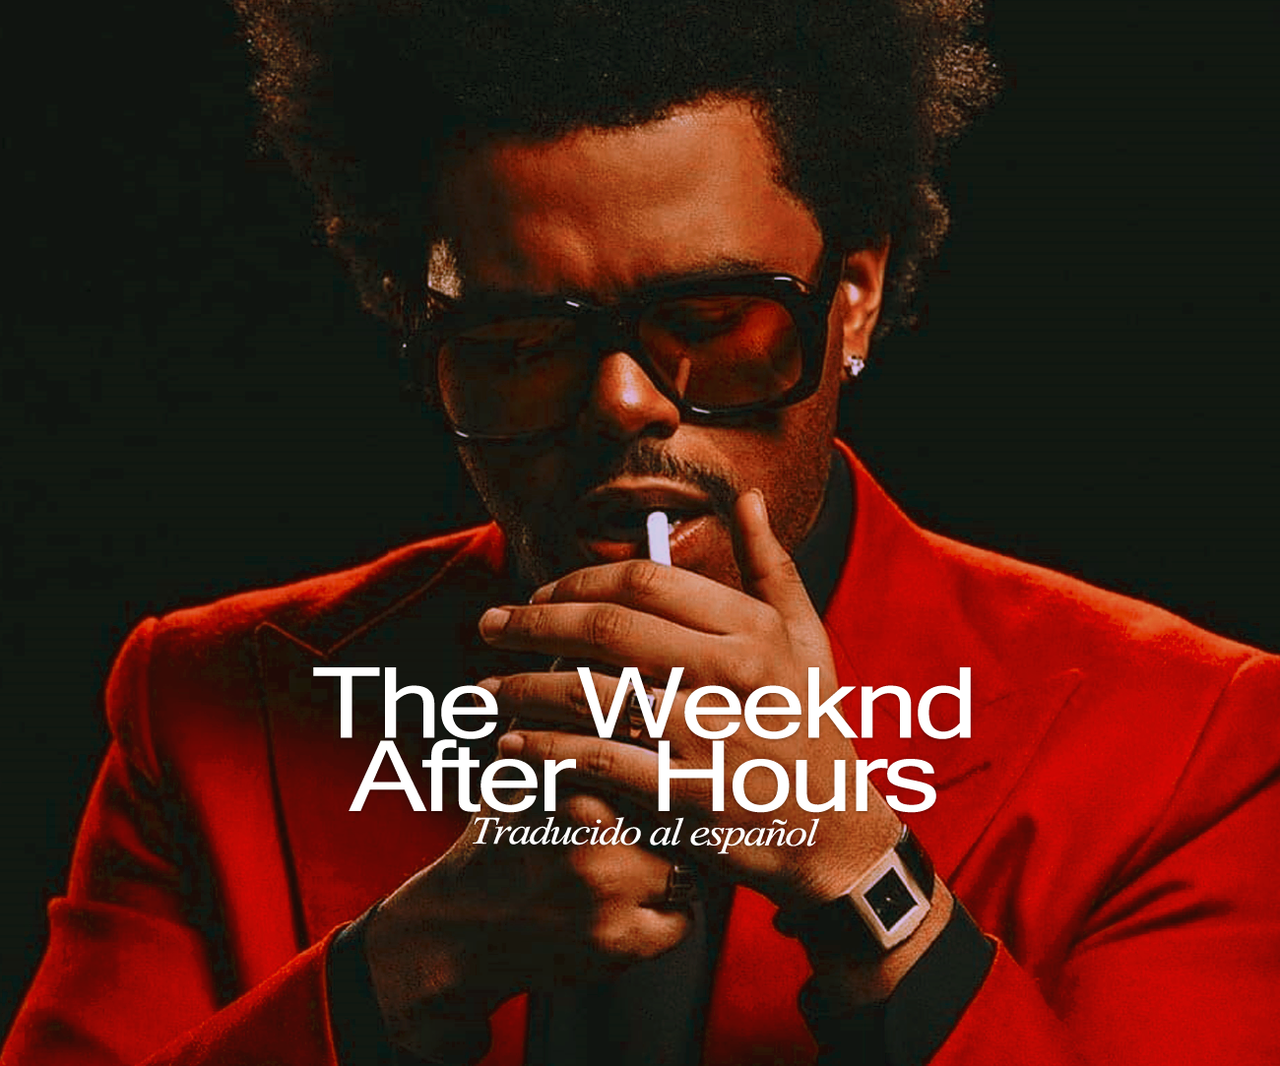 After Hours, blinding lights, and the weeknd image